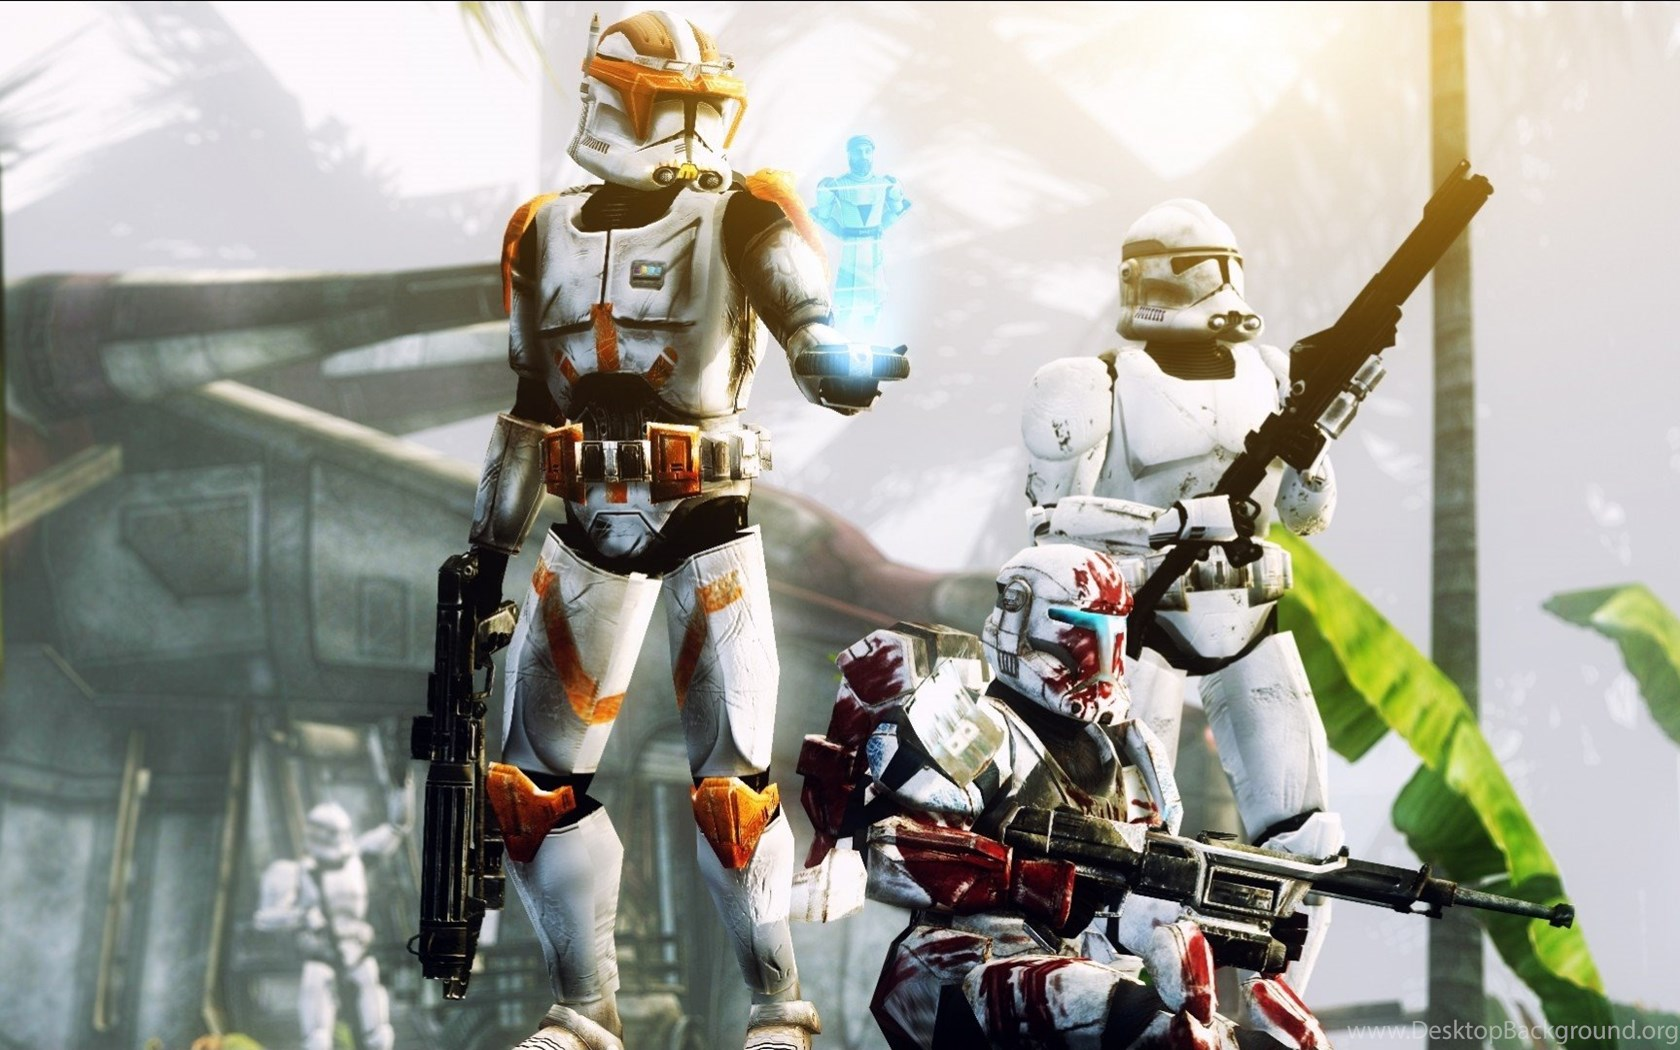 Star Wars The Clone Wars Wallpaper: Clone Wars, Star Wars 1920x1080 (1080p) Wallpapers HD